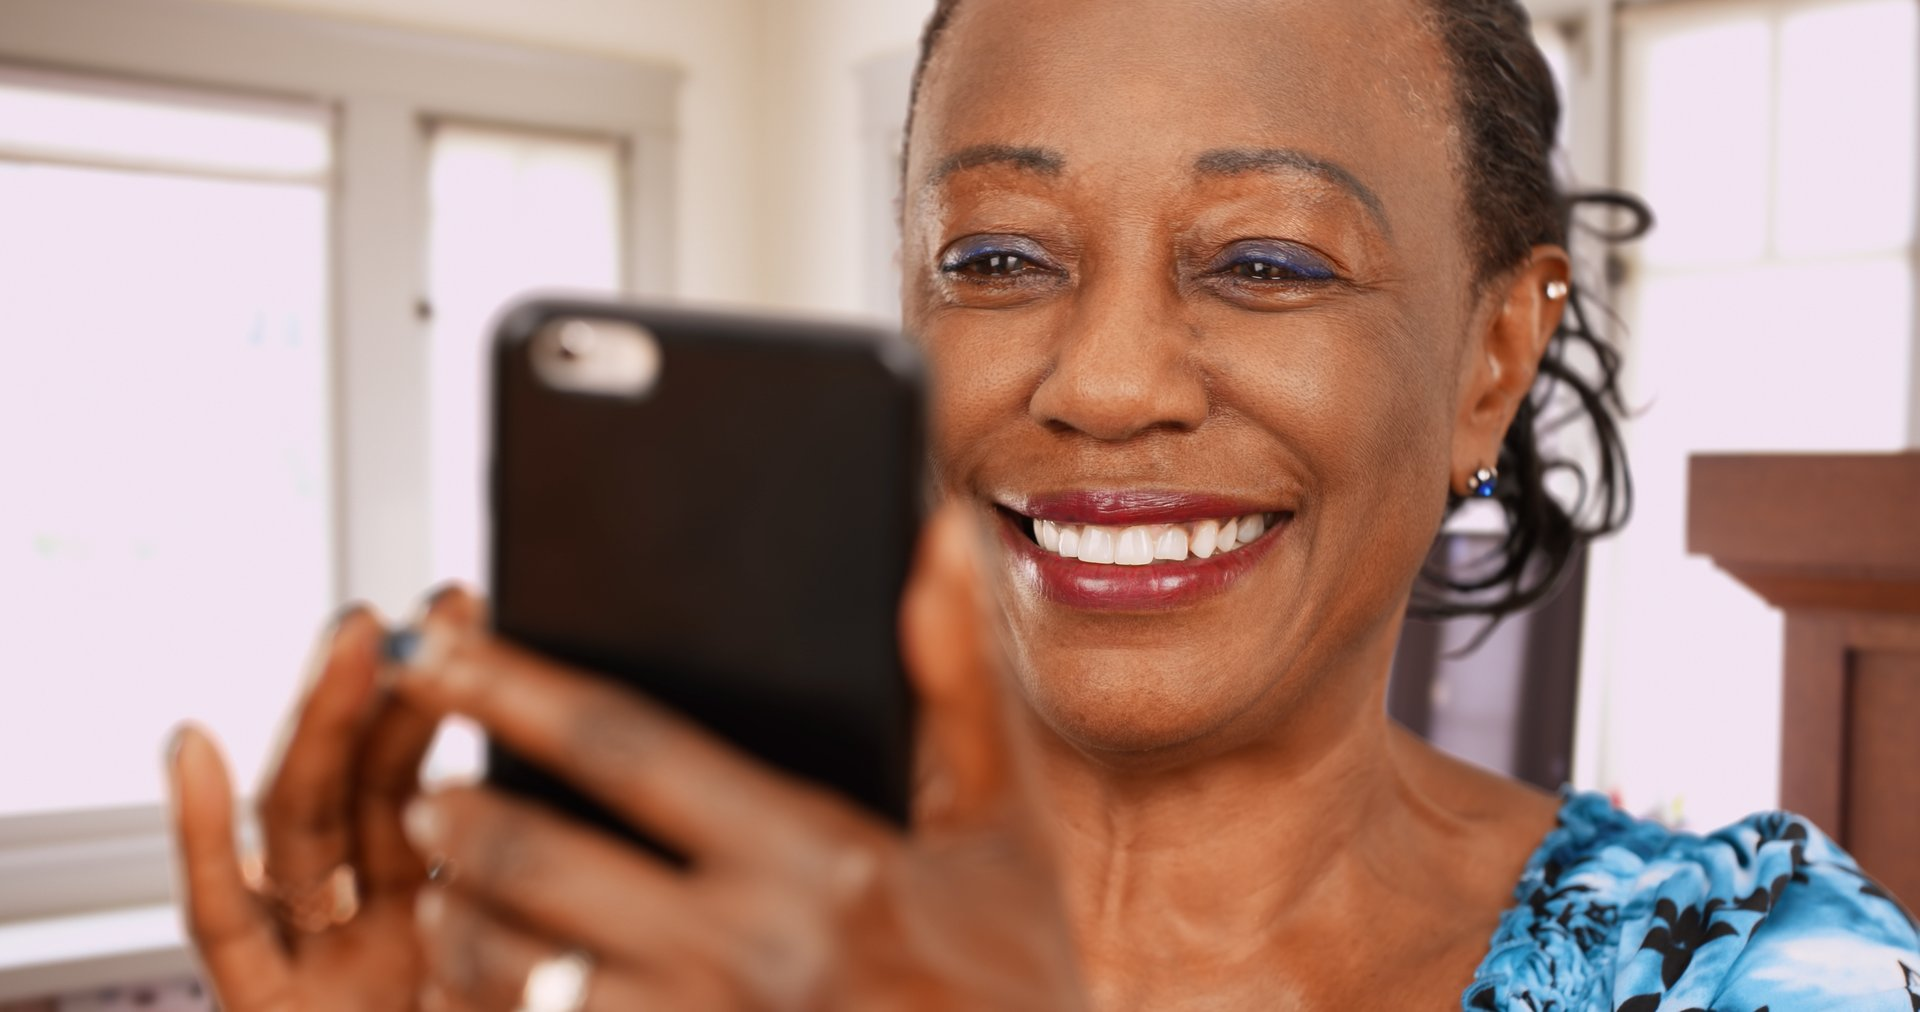 African American woman with cellphone